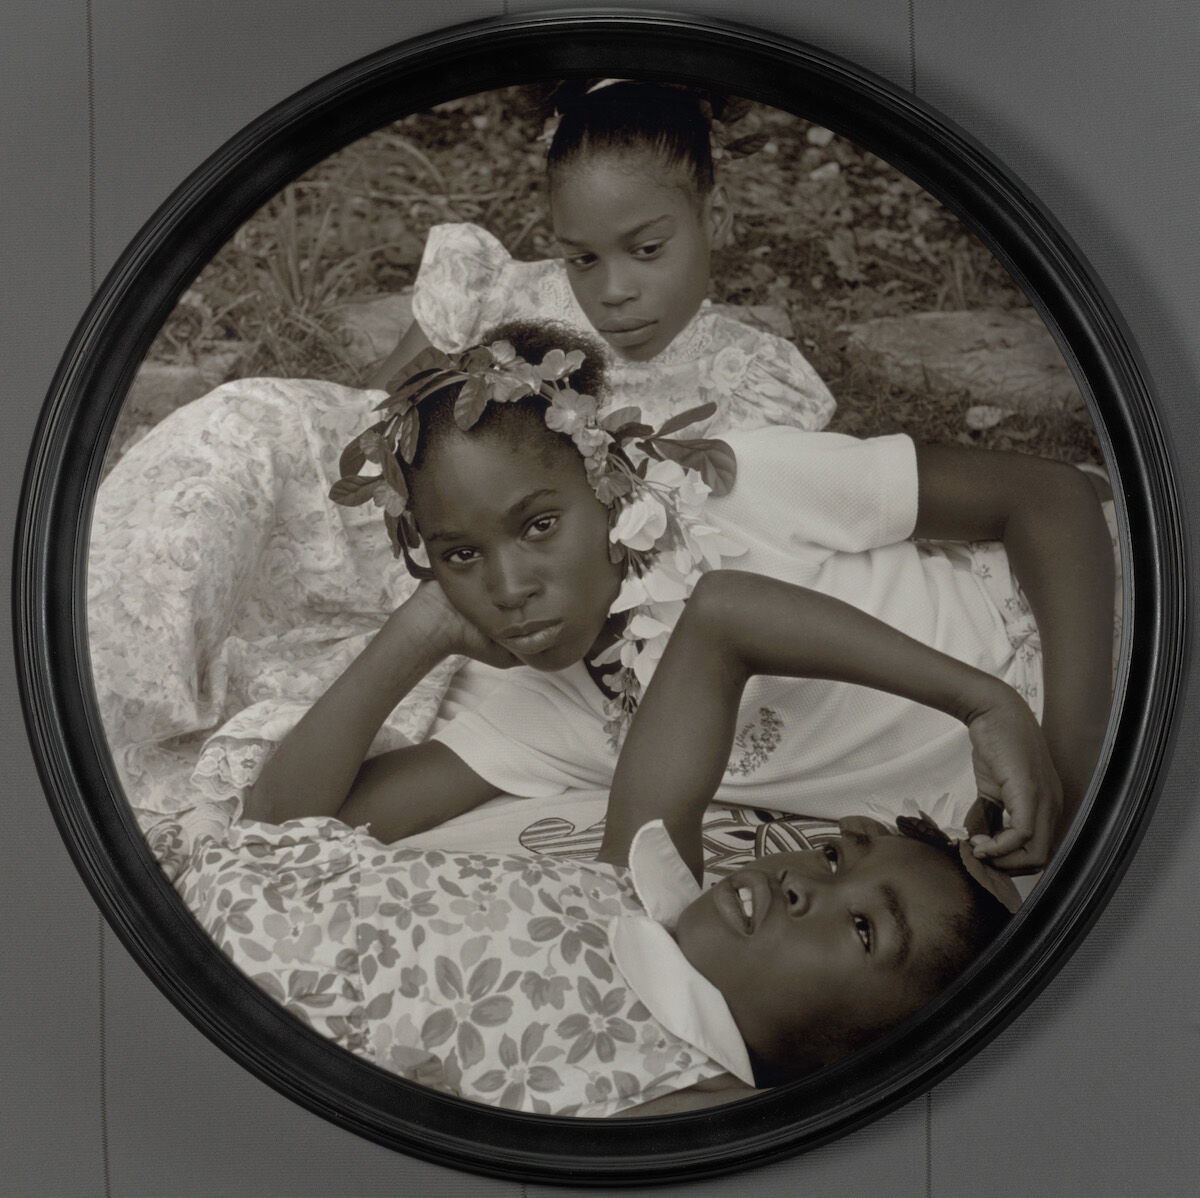 Carrie Mae Weems, May Flowers. 2002. The Baltimore Museum of Art: Purchase with exchange funds from the Pearlstone Family Fund and partial gift of The Andy Warhol Foundation for the Visual Arts, Inc. © Carrie Mae Weems.